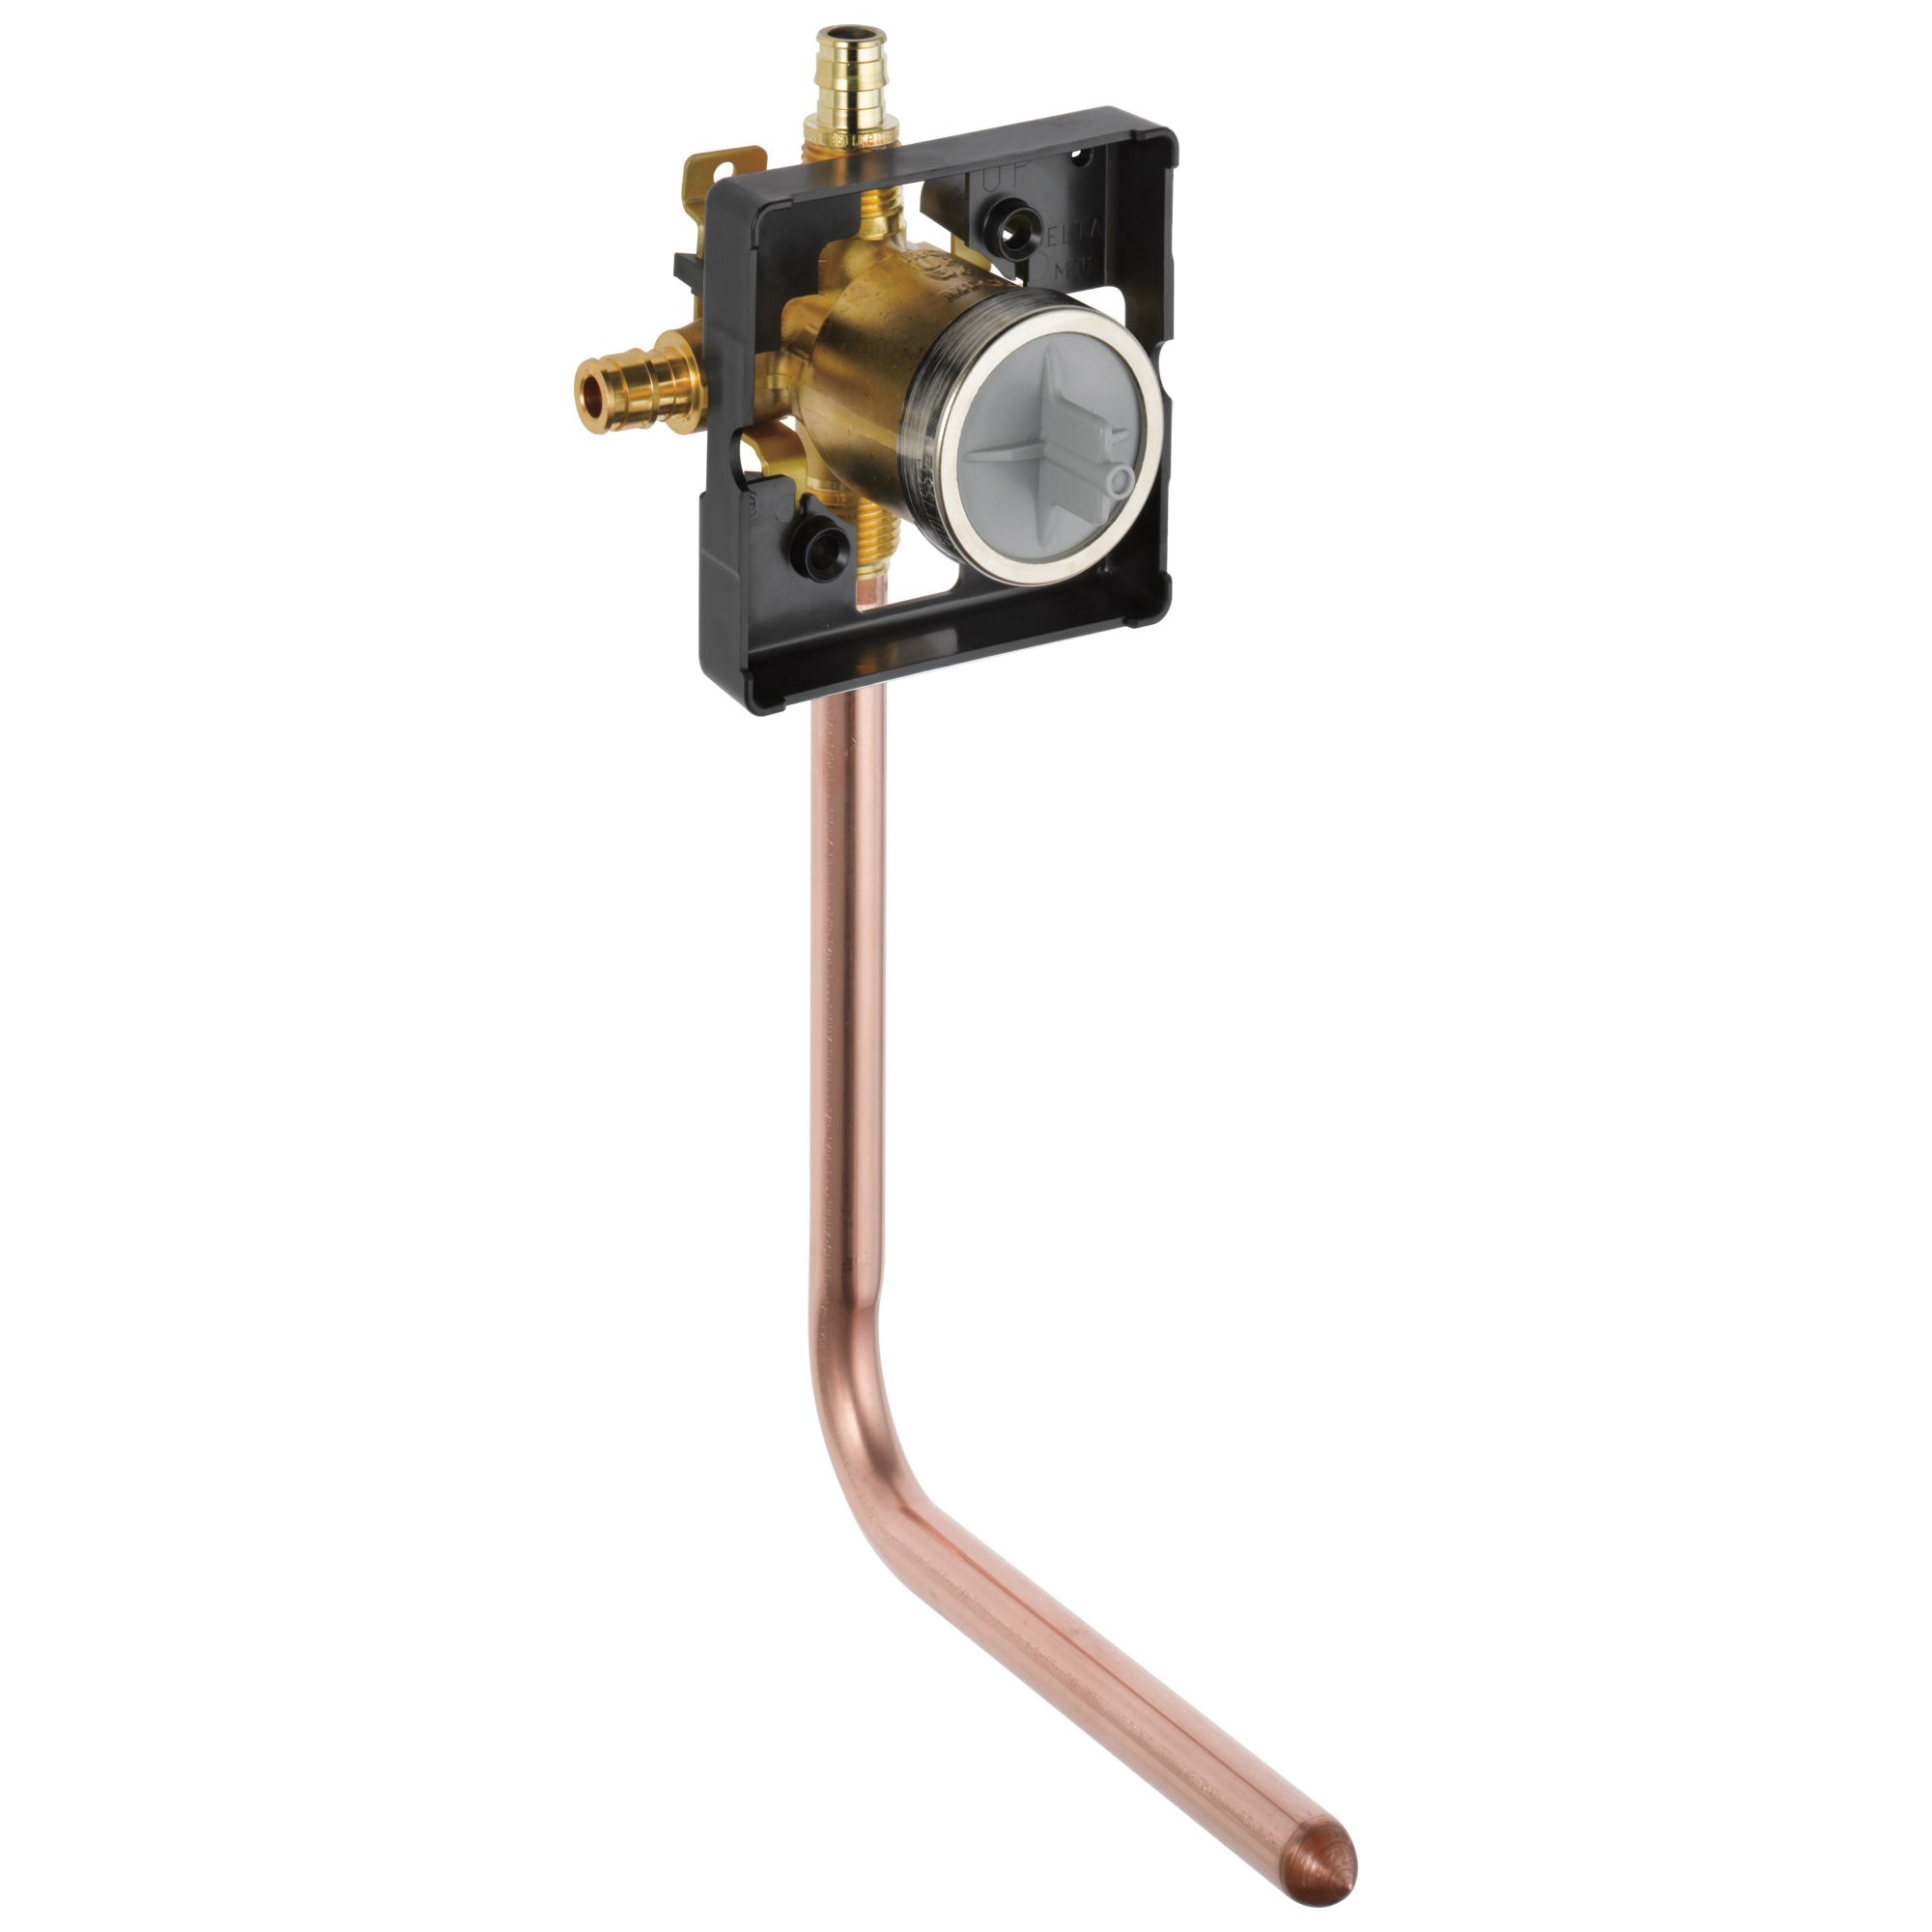 DELTA® R10000-PFT-MF MultiChoice® Universal Prefab Shower Rough-In Valve Body, 1/2 in Cold Expansion PEX Inlet x 1/2 in Pex Cold Expansion Outlet, Forged Brass Body, Domestic